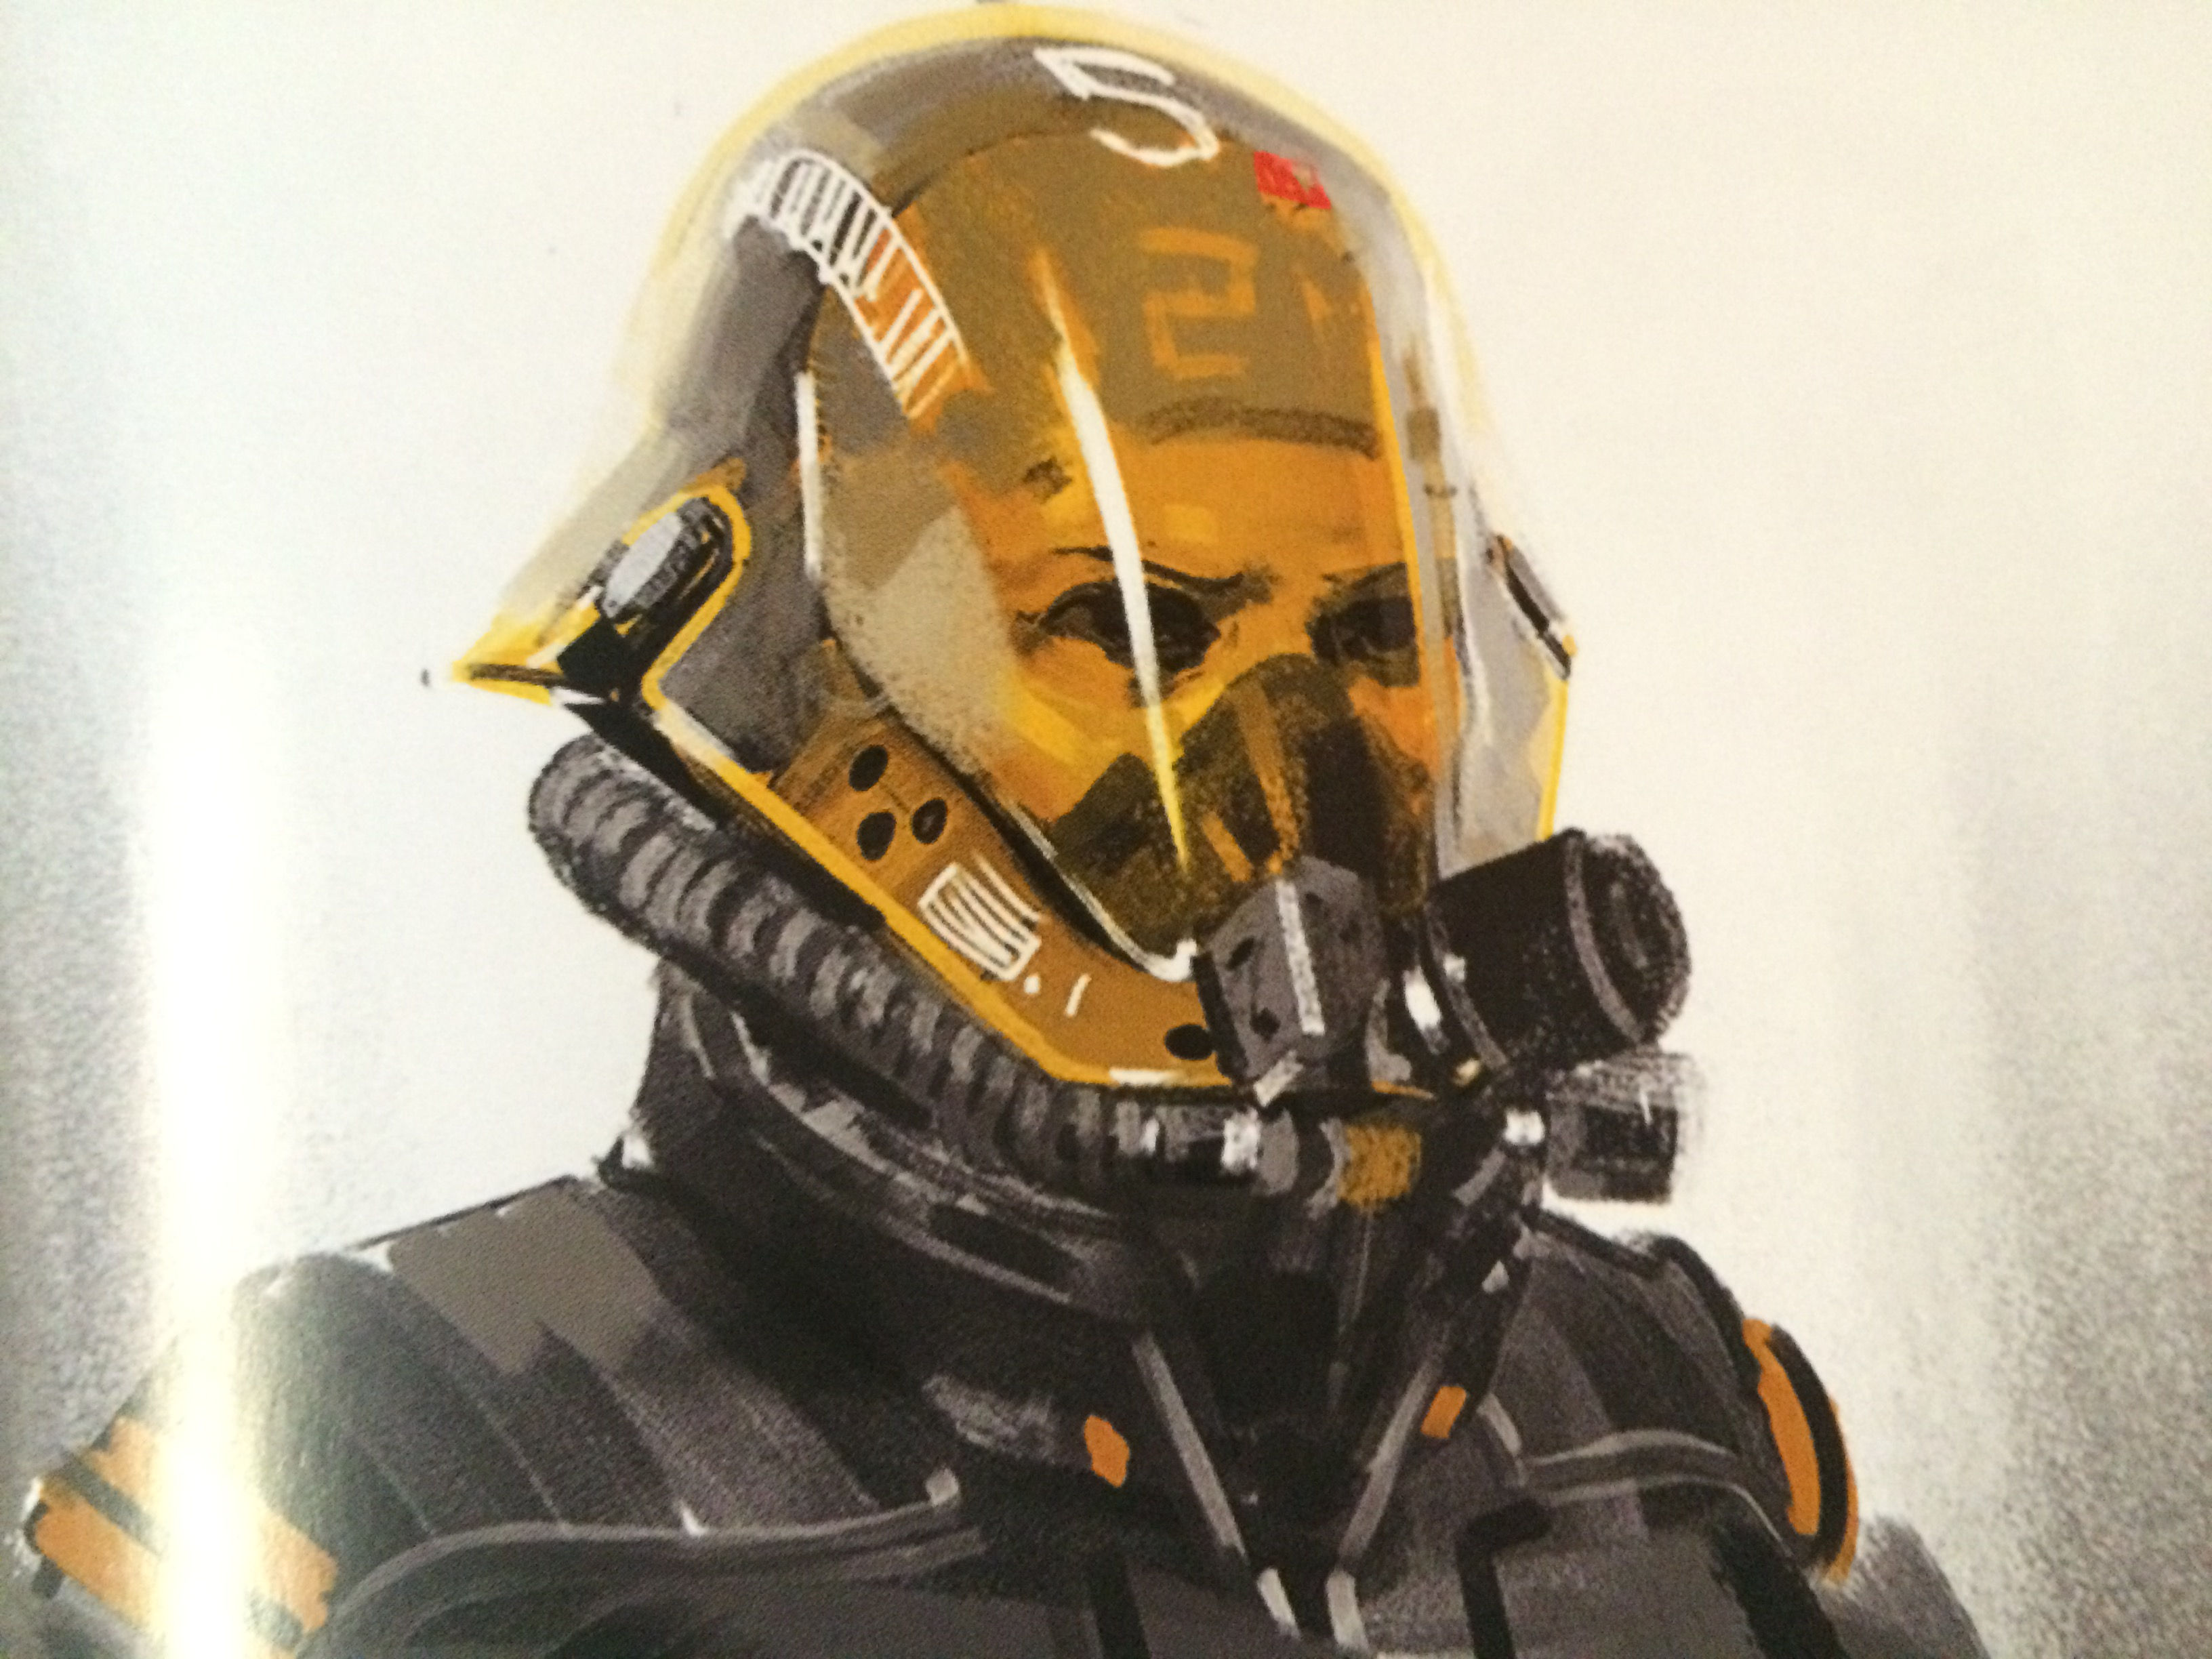 Homeworld Deserts of Kharak Collector's Edition Concept Art - Desert Personnel Helmet Concept